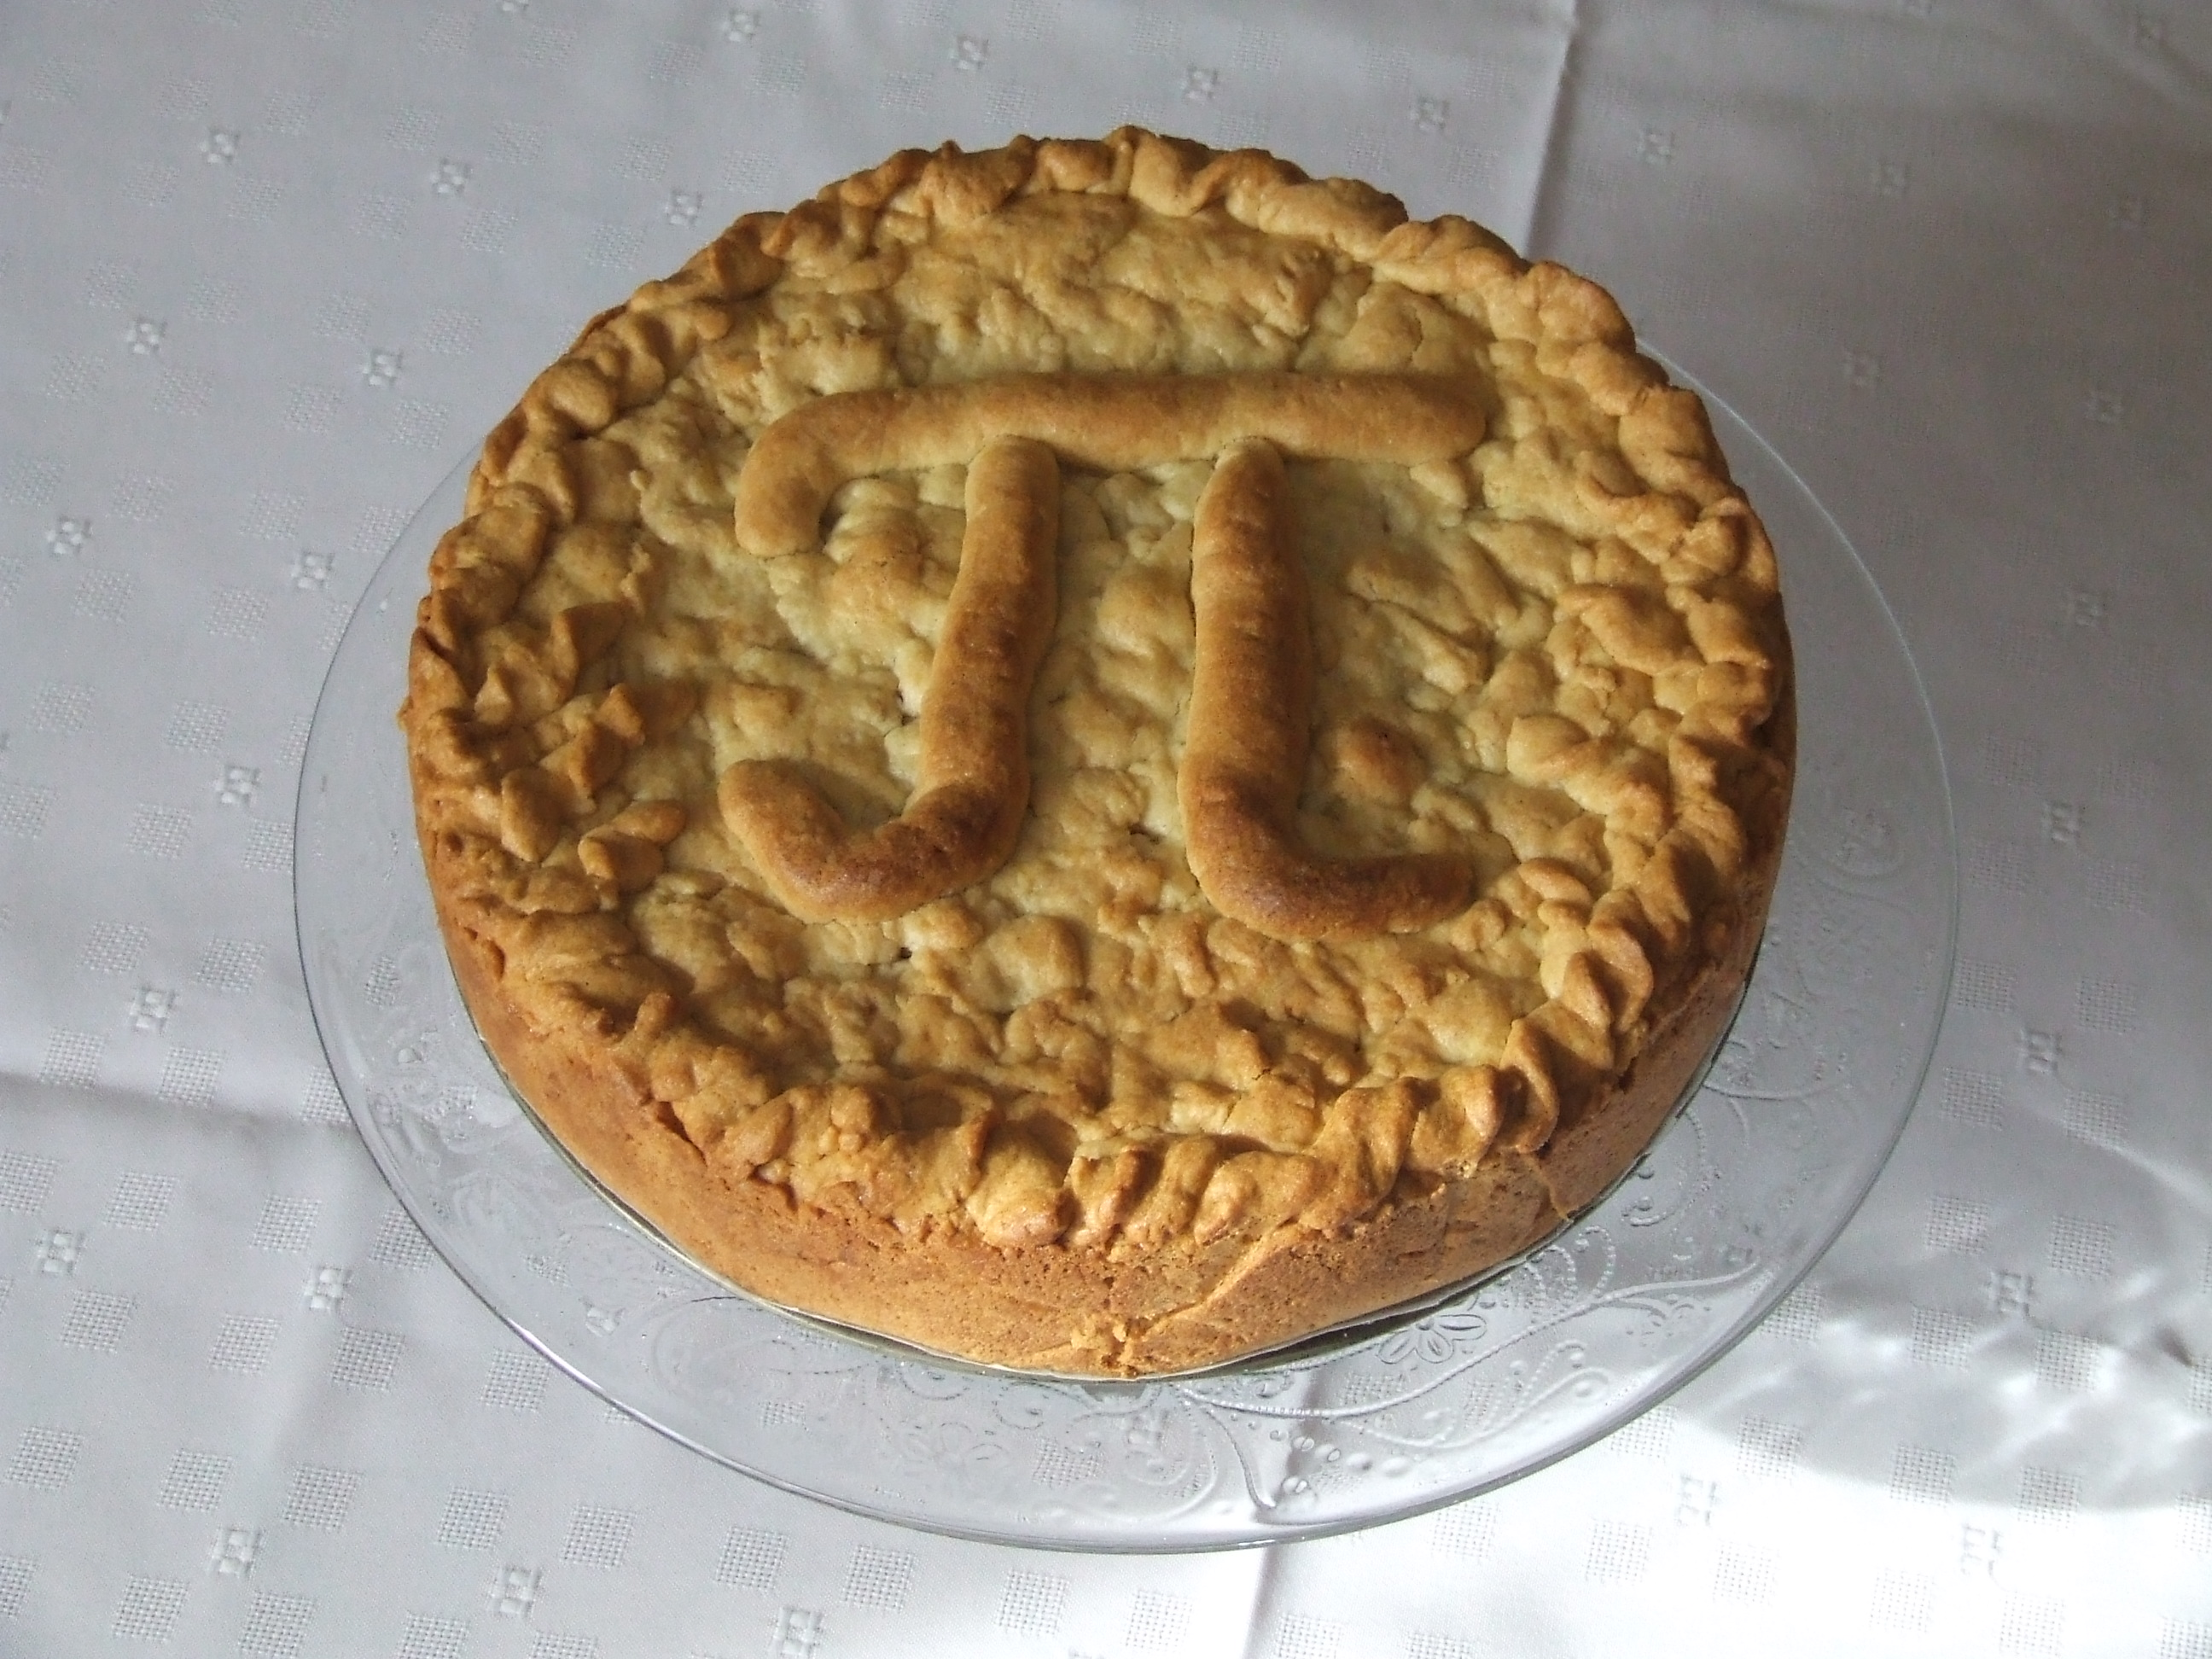 apple pie with a Pi symbol baked into the crust